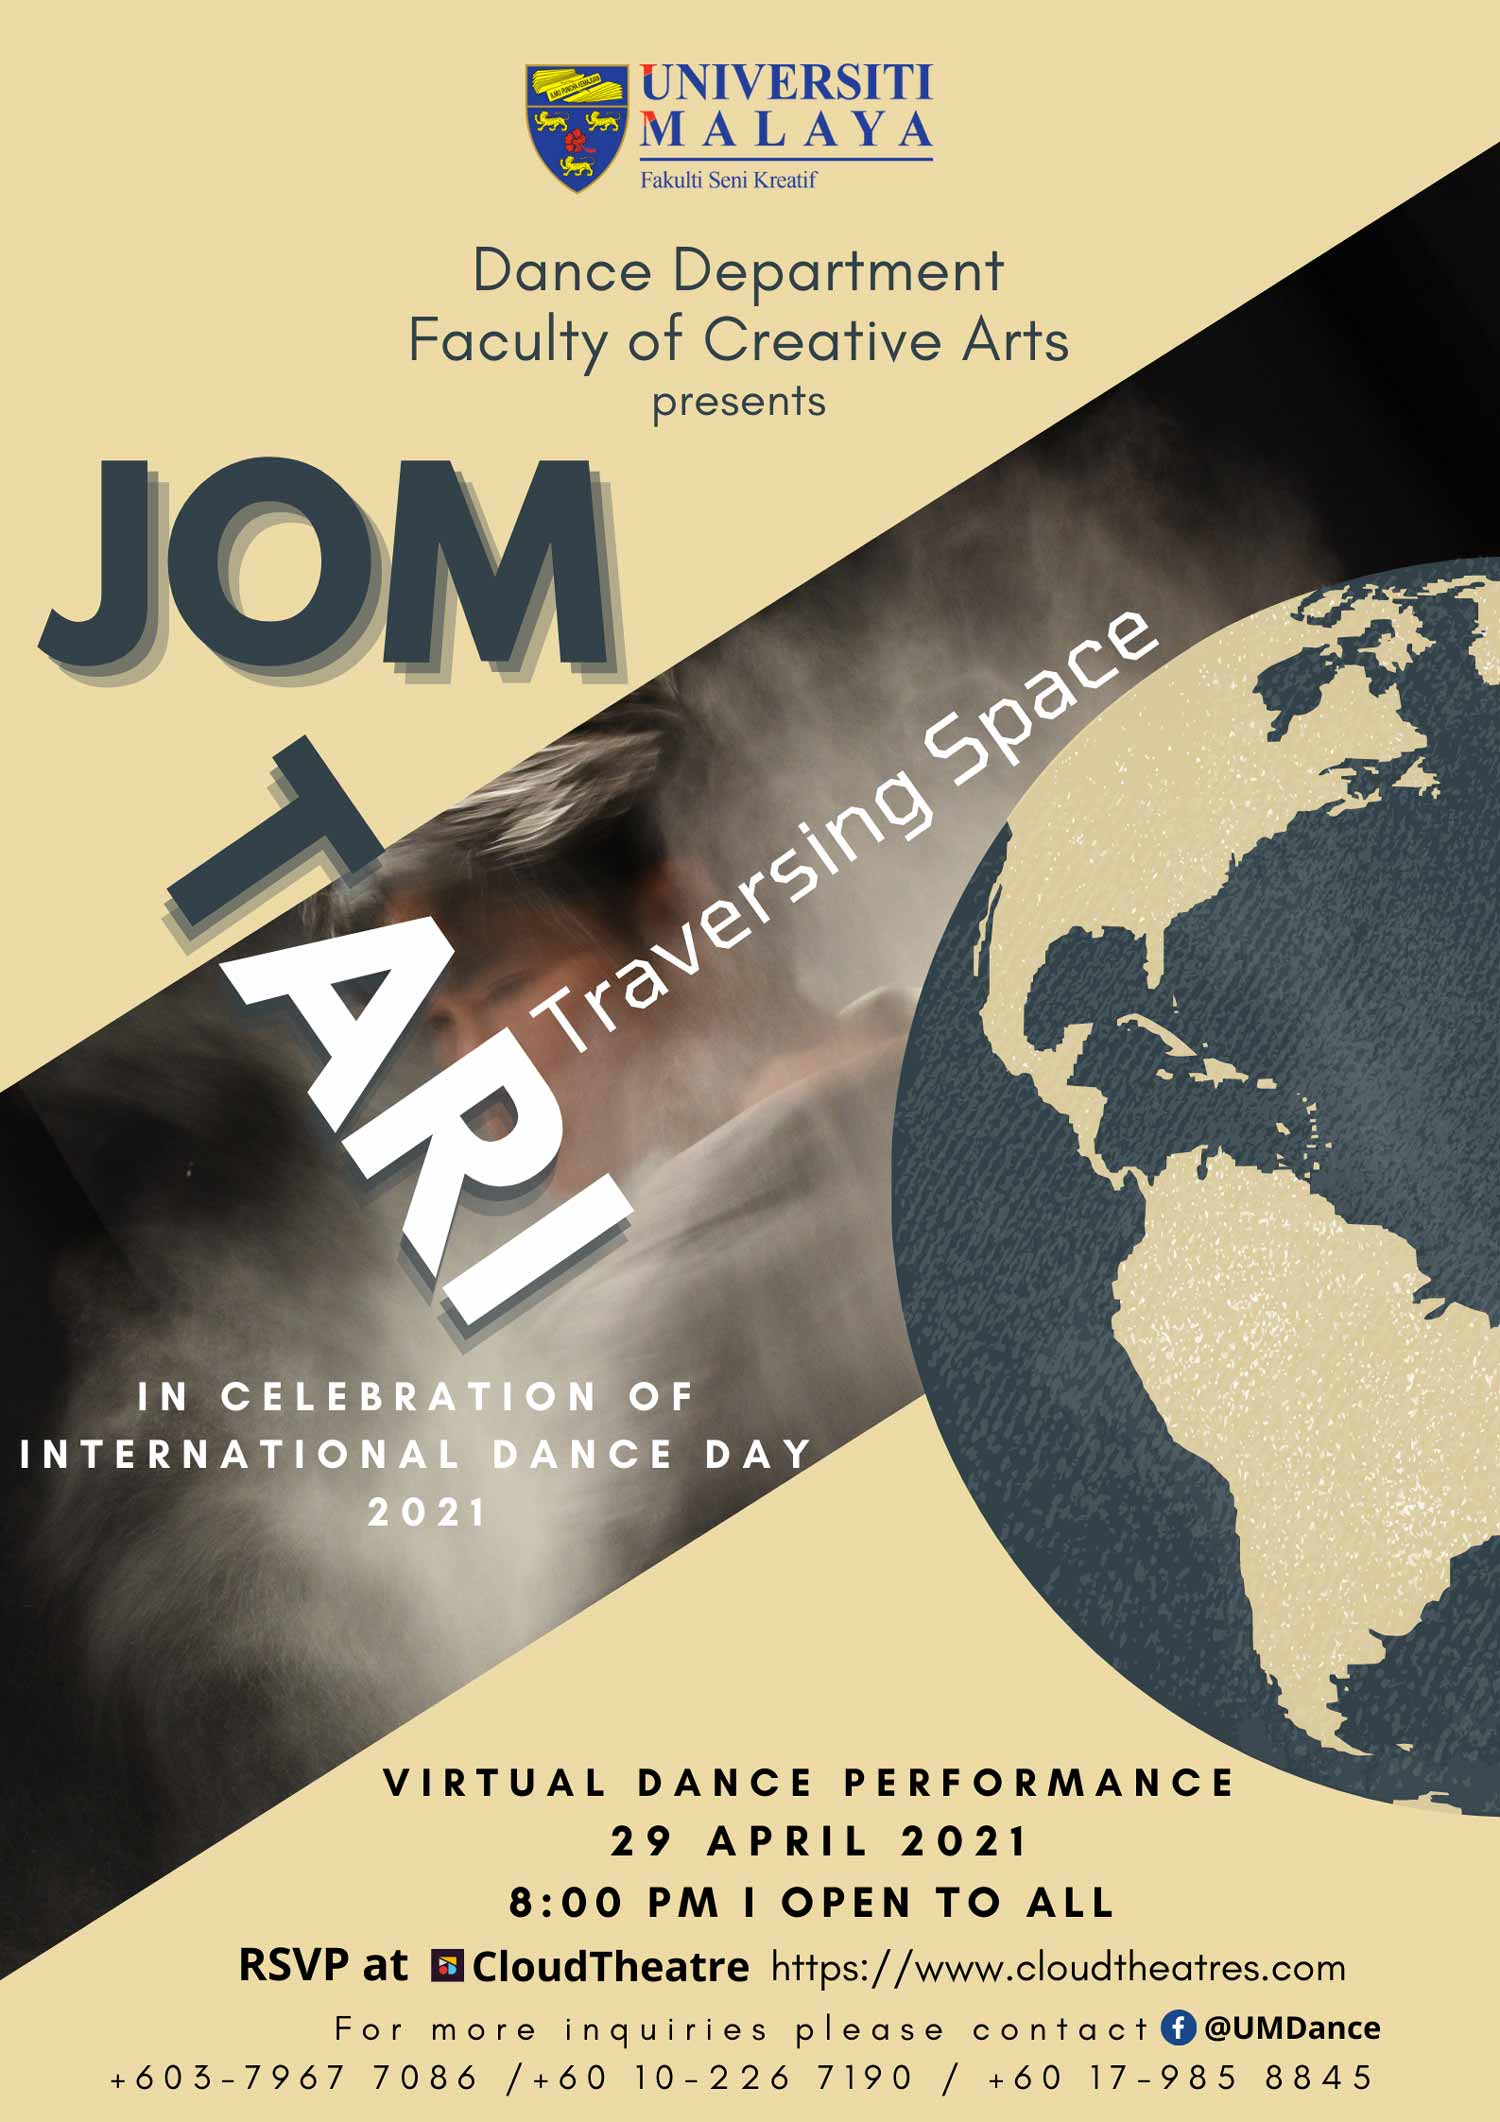 JOM TARI Traversing Space, Virtual Dance Performance, In Celebration of International Dance Day 2021